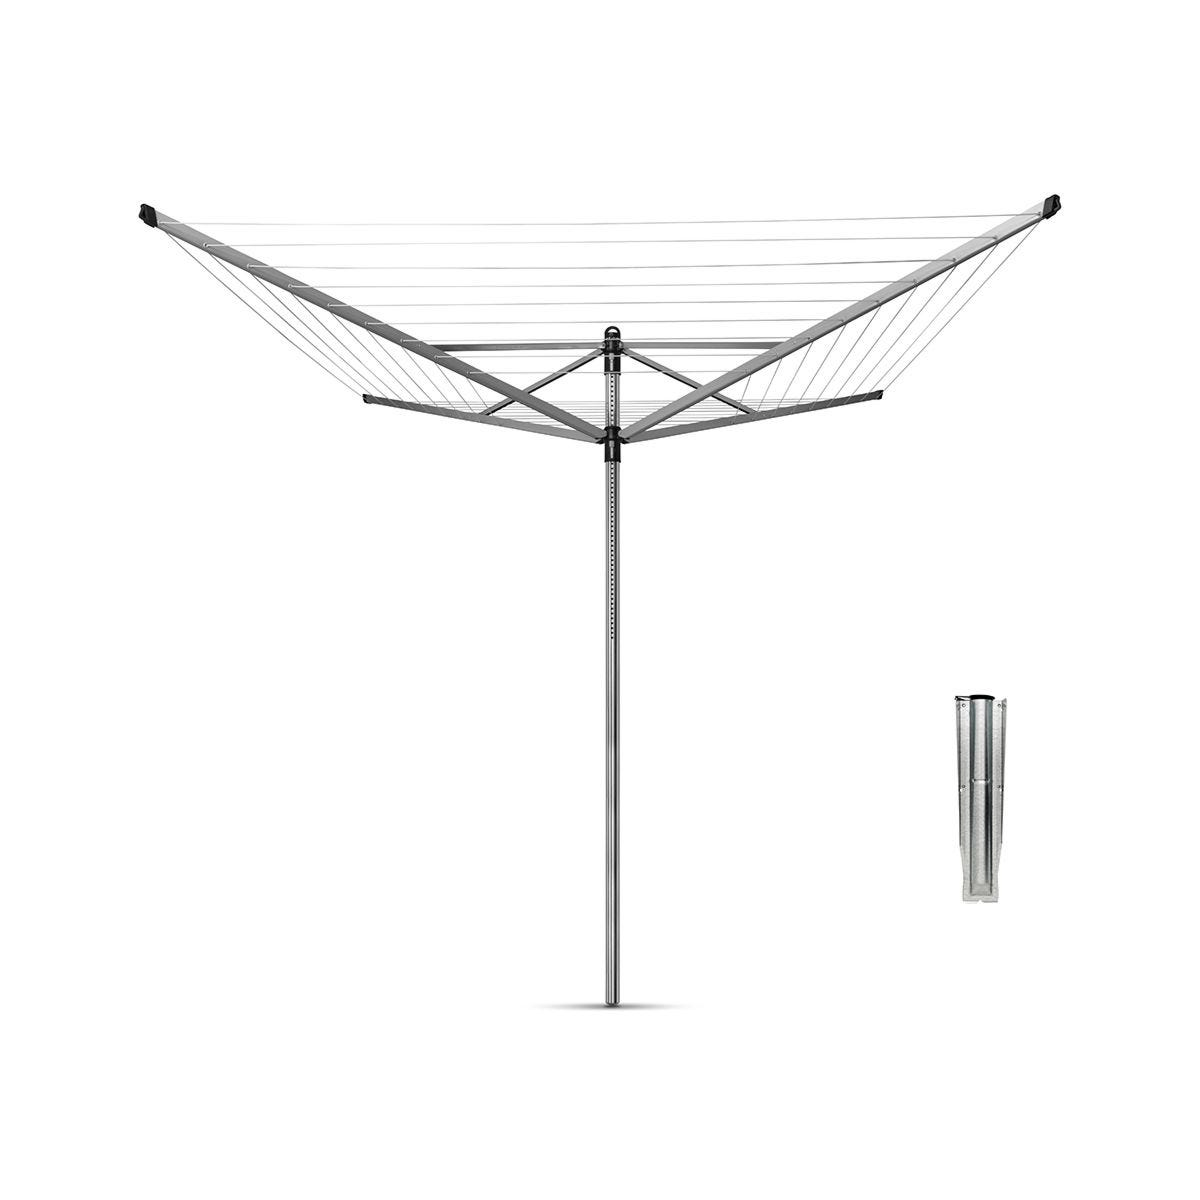 Brabantia Lift-O-Matic 40m 4-Arm Rotary Airer with Ground Spike